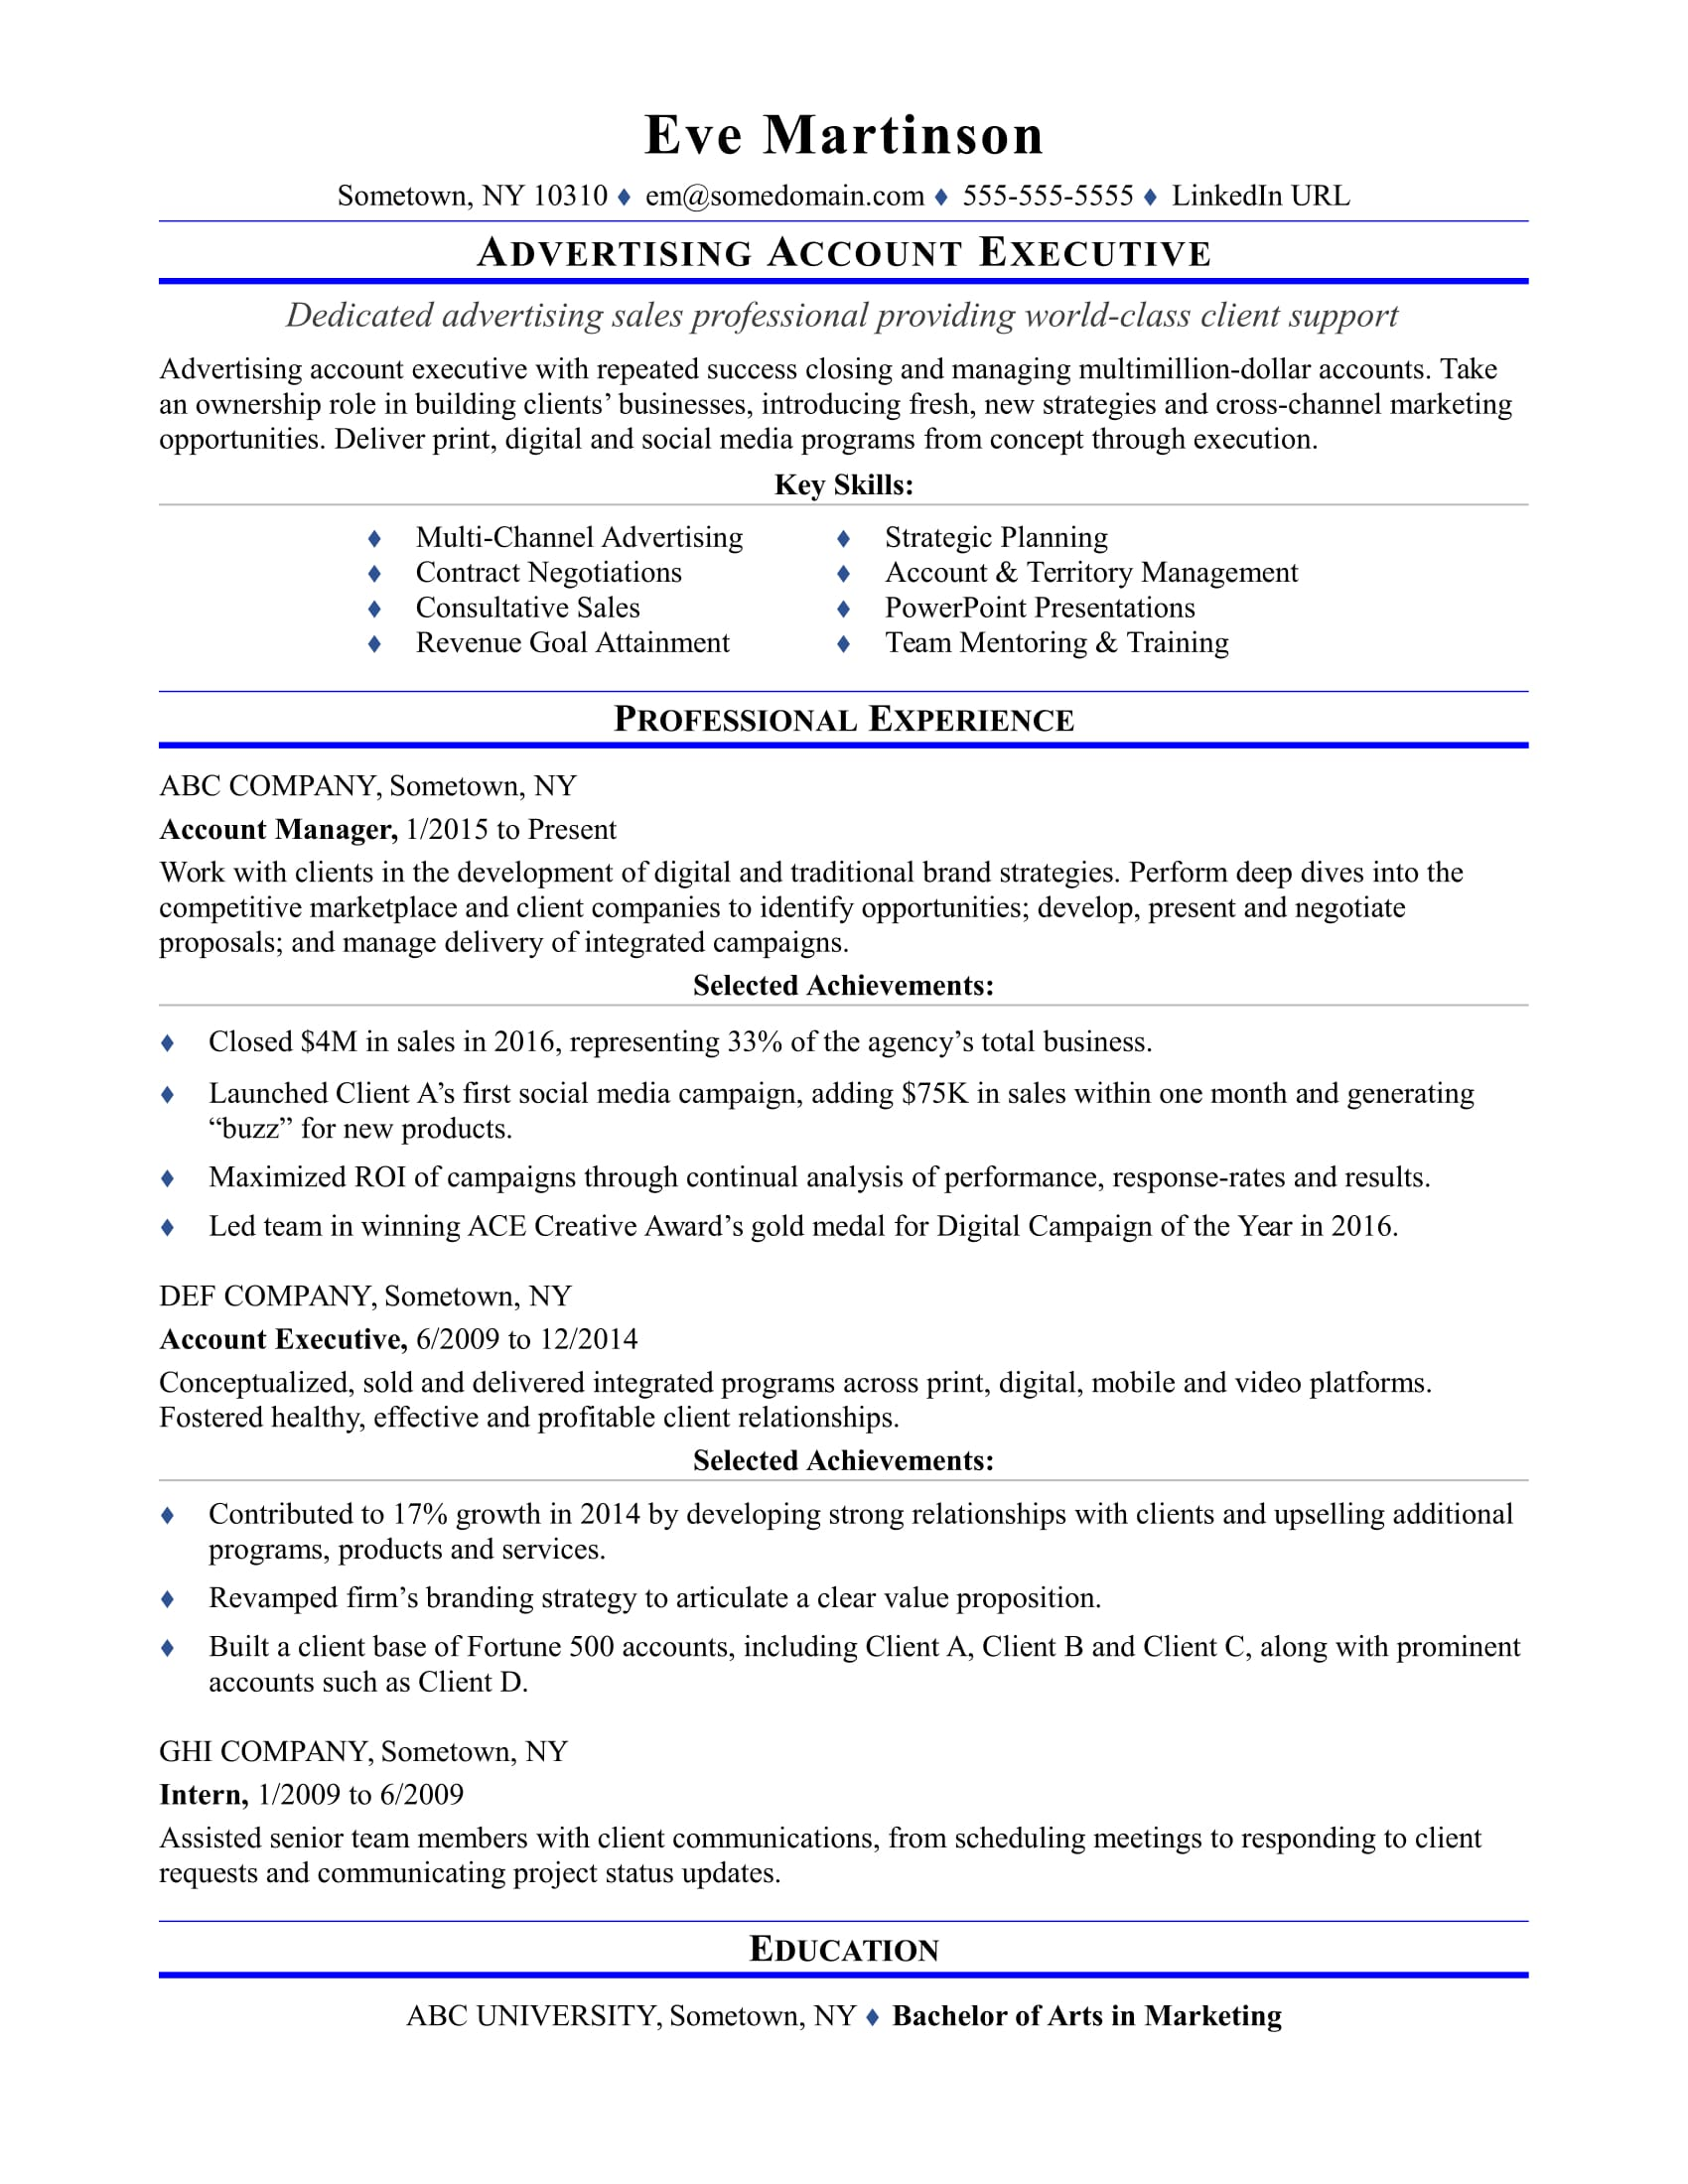 sample resume for an advertising account executive monster about yourself photography Resume About Yourself For Resume